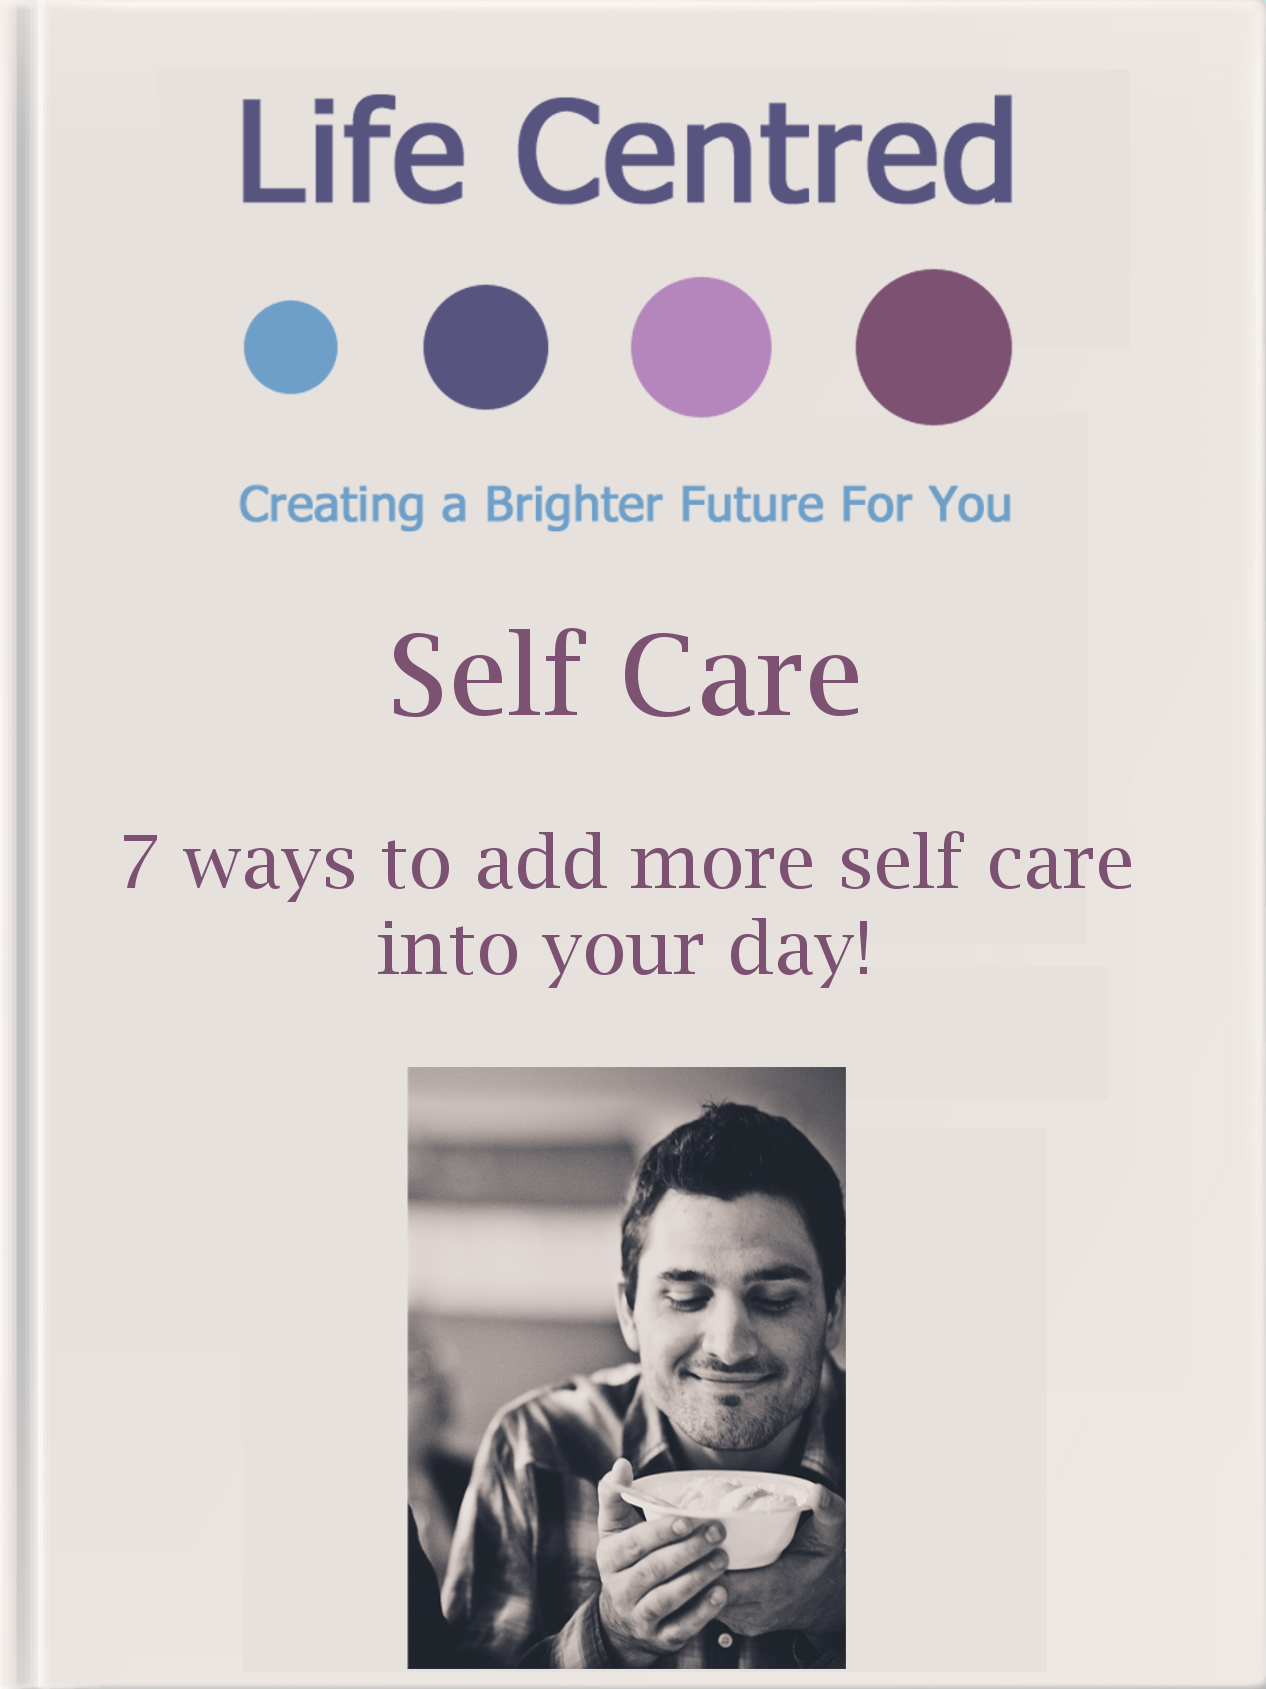 Download our Self Care Ebook